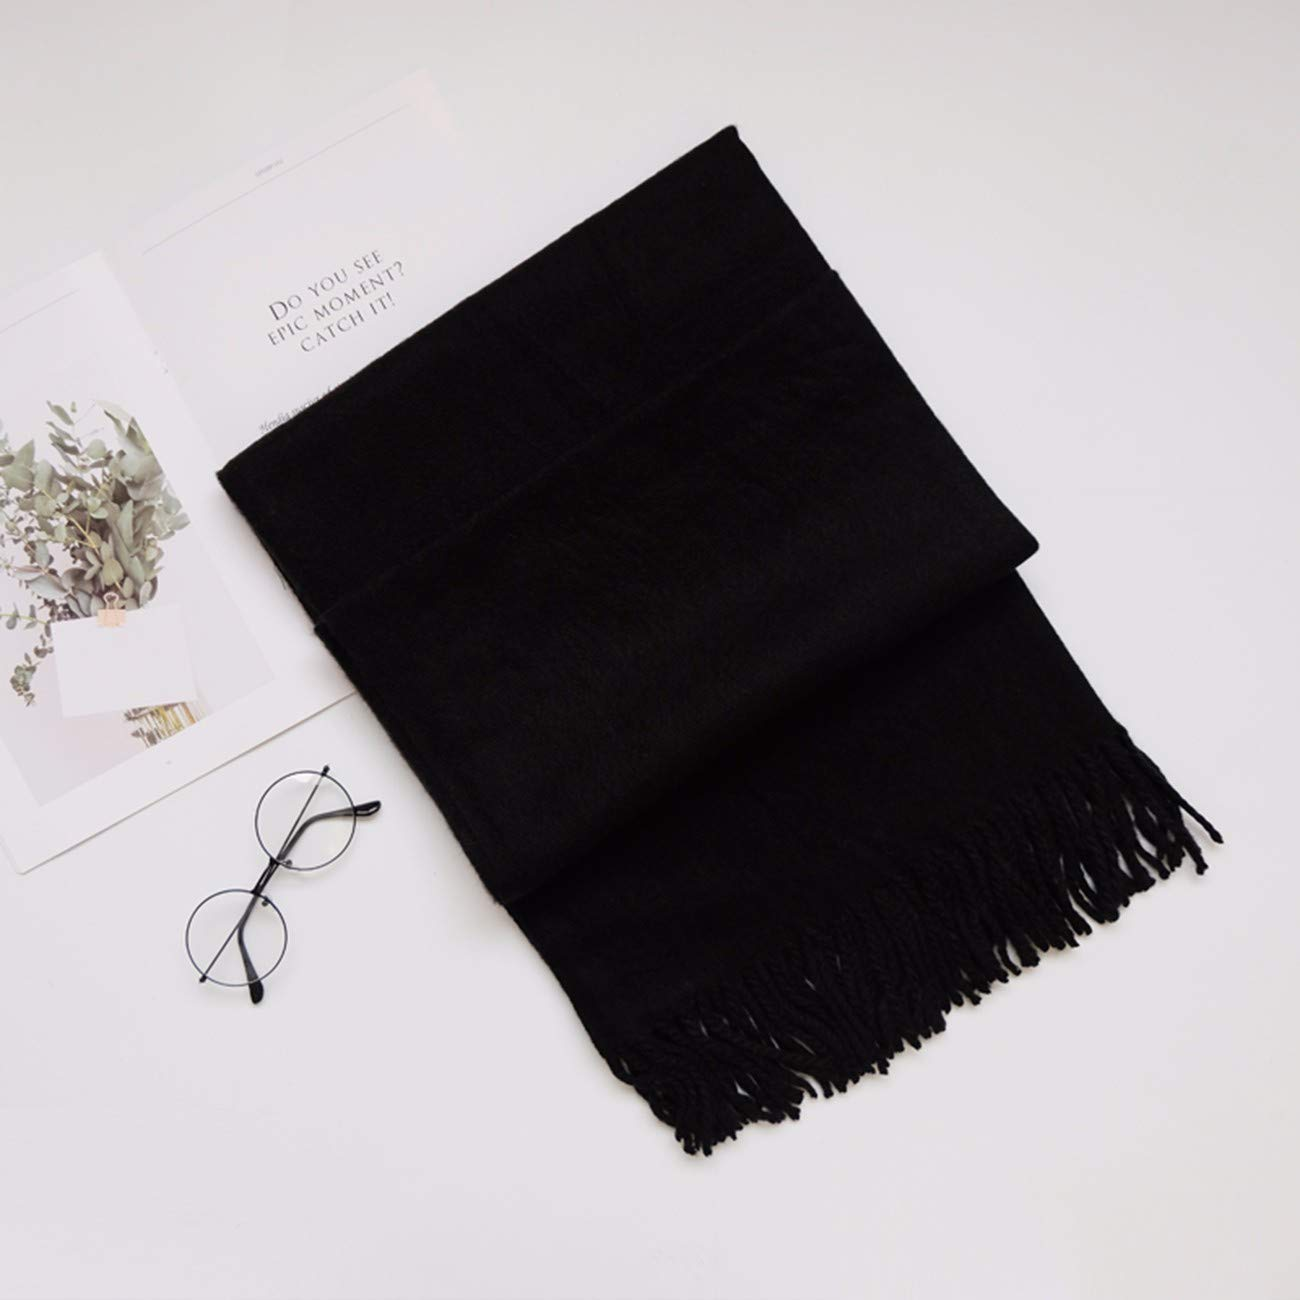 F Thickened Pure color Cashmere Scarf, DualPurpose Shawl and Long Neck Scarf.